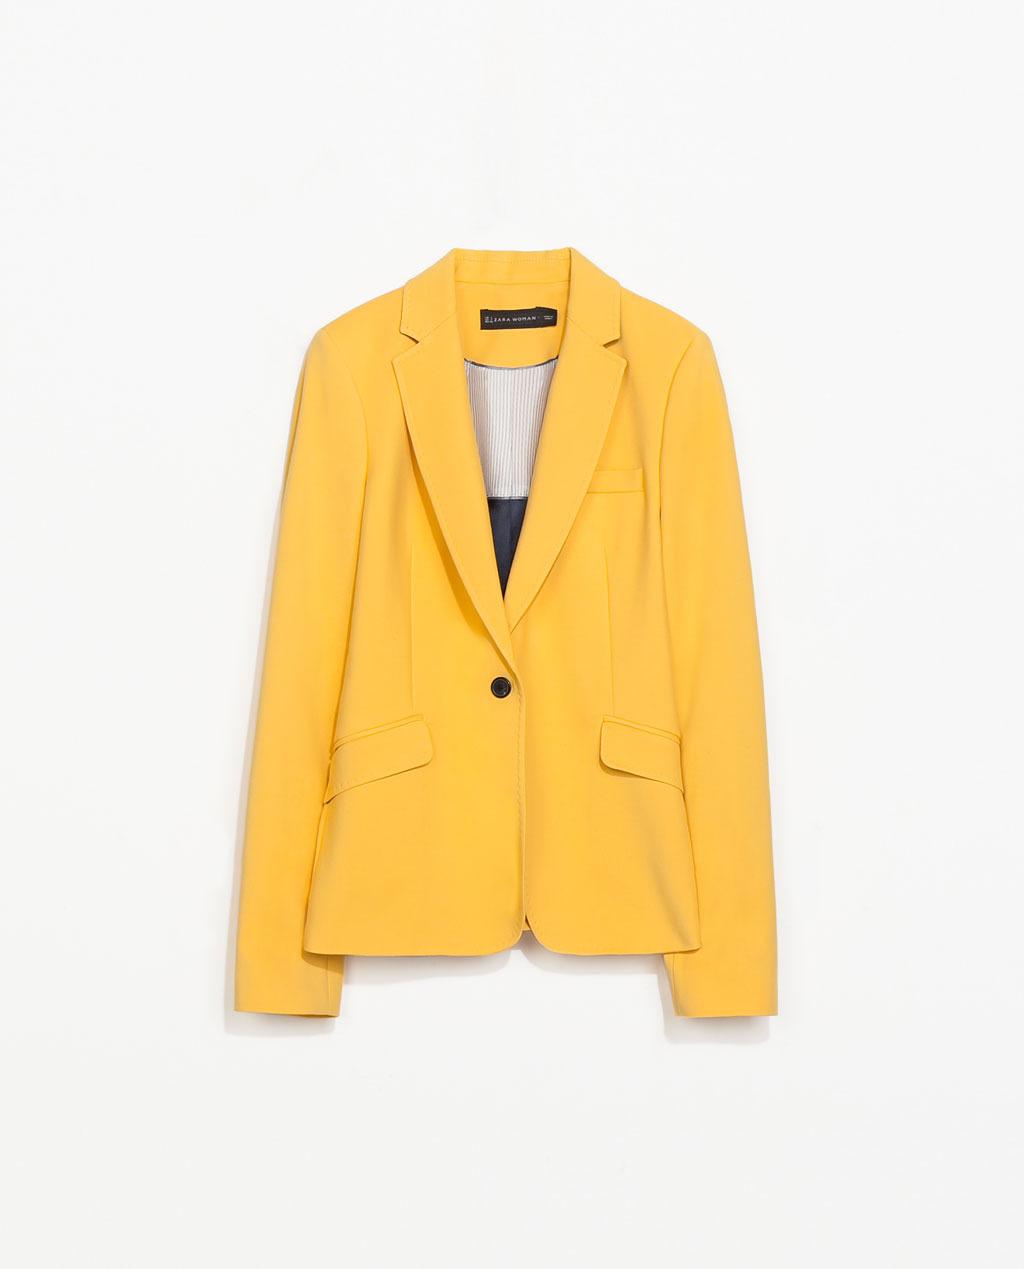 Tailored Blazer - pattern: plain; style: single breasted blazer; collar: standard lapel/rever collar; predominant colour: yellow; occasions: casual, evening, creative work; length: standard; fit: tailored/fitted; fibres: cotton - stretch; sleeve length: long sleeve; sleeve style: standard; texture group: cotton feel fabrics; collar break: medium; pattern type: fabric; trends: hot brights; season: s/s 2014